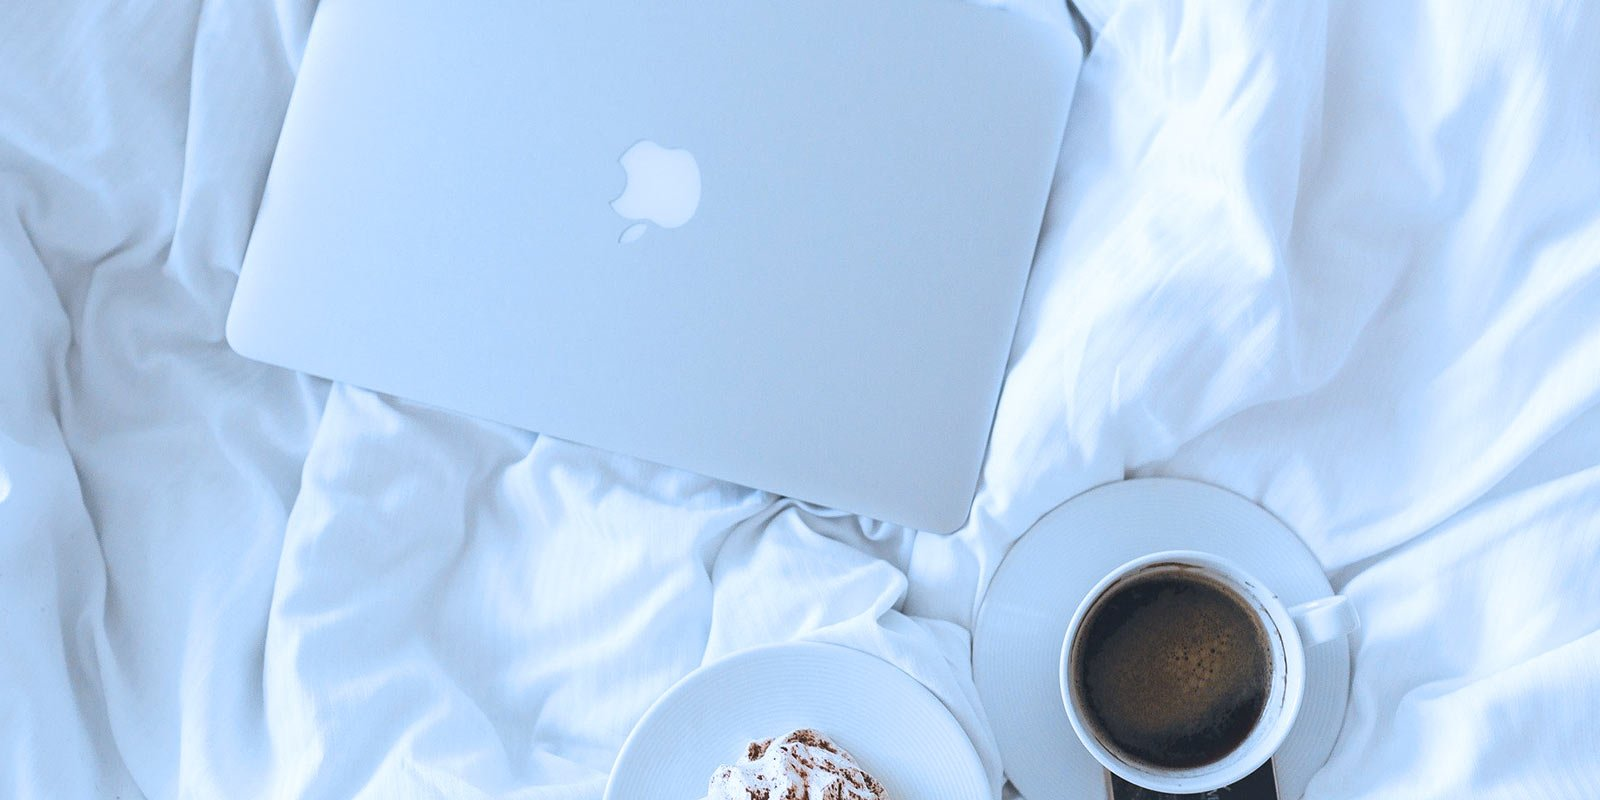 Comfy bed with laptop inviting Entrepreneur to get better sleep for peak performance.